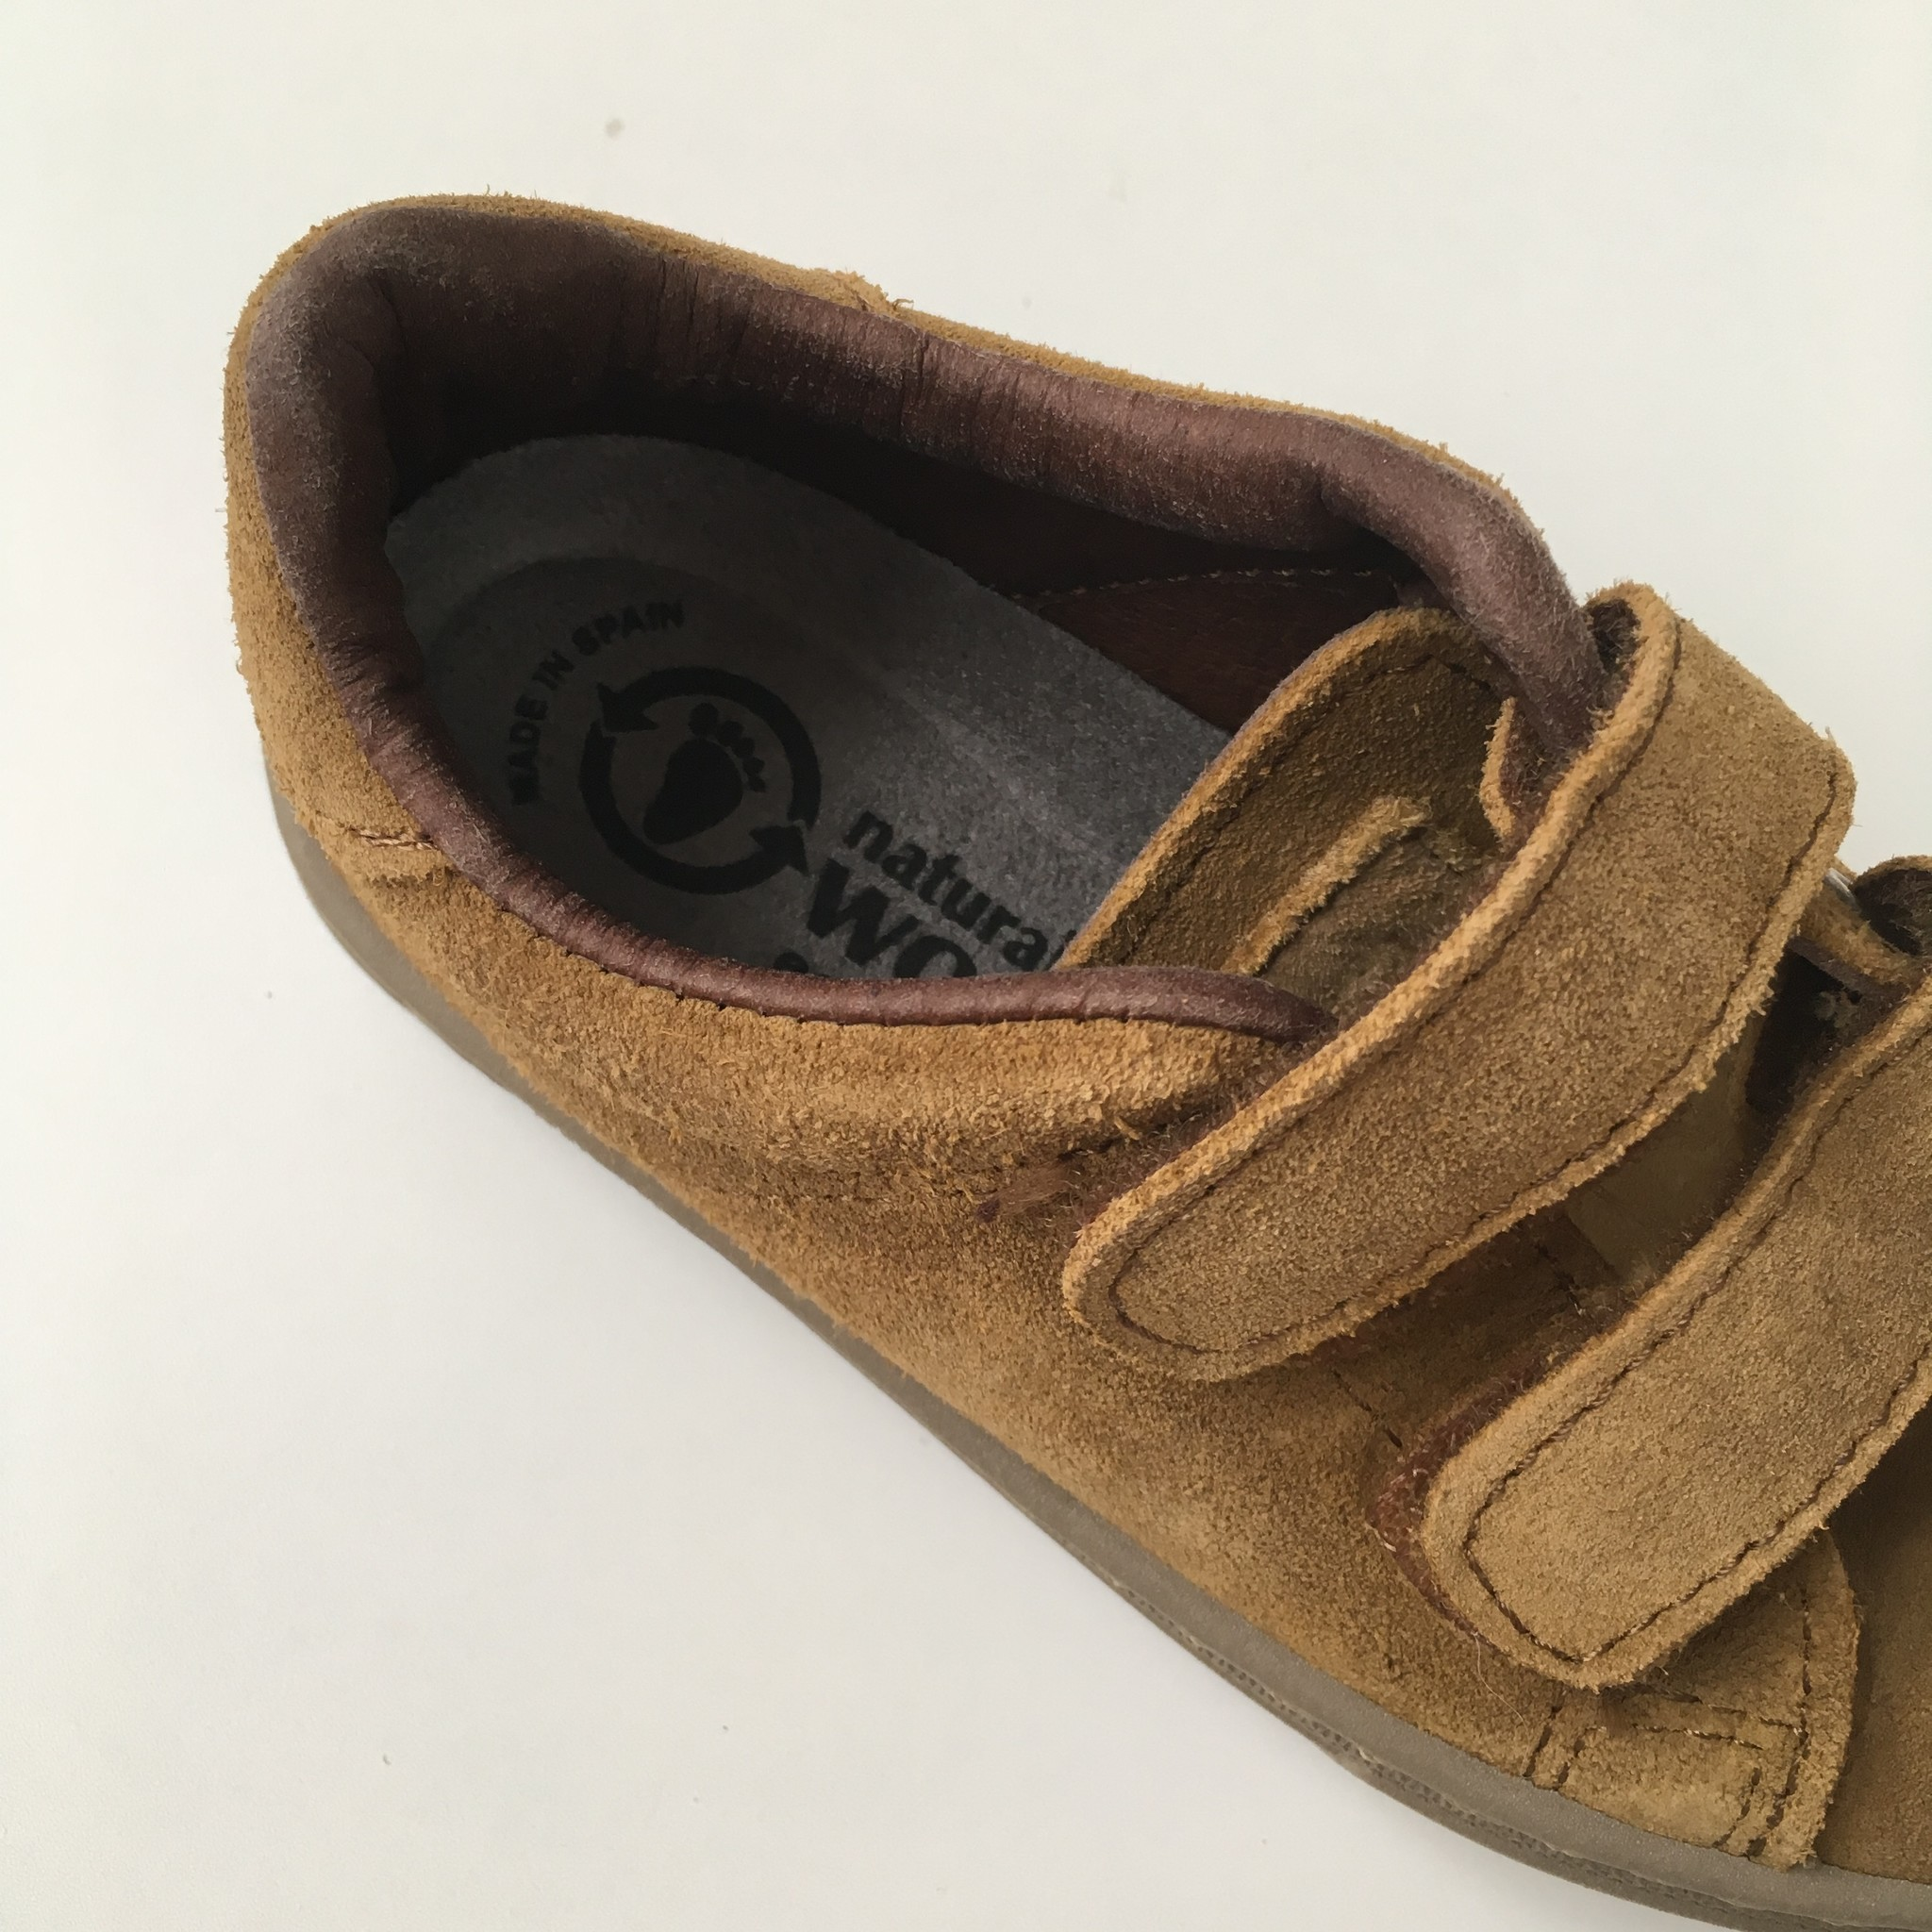 NATURAL WORLD suede eco kids sneakers TEO  - 100% natural rubber sole - mustard - 25 to 38